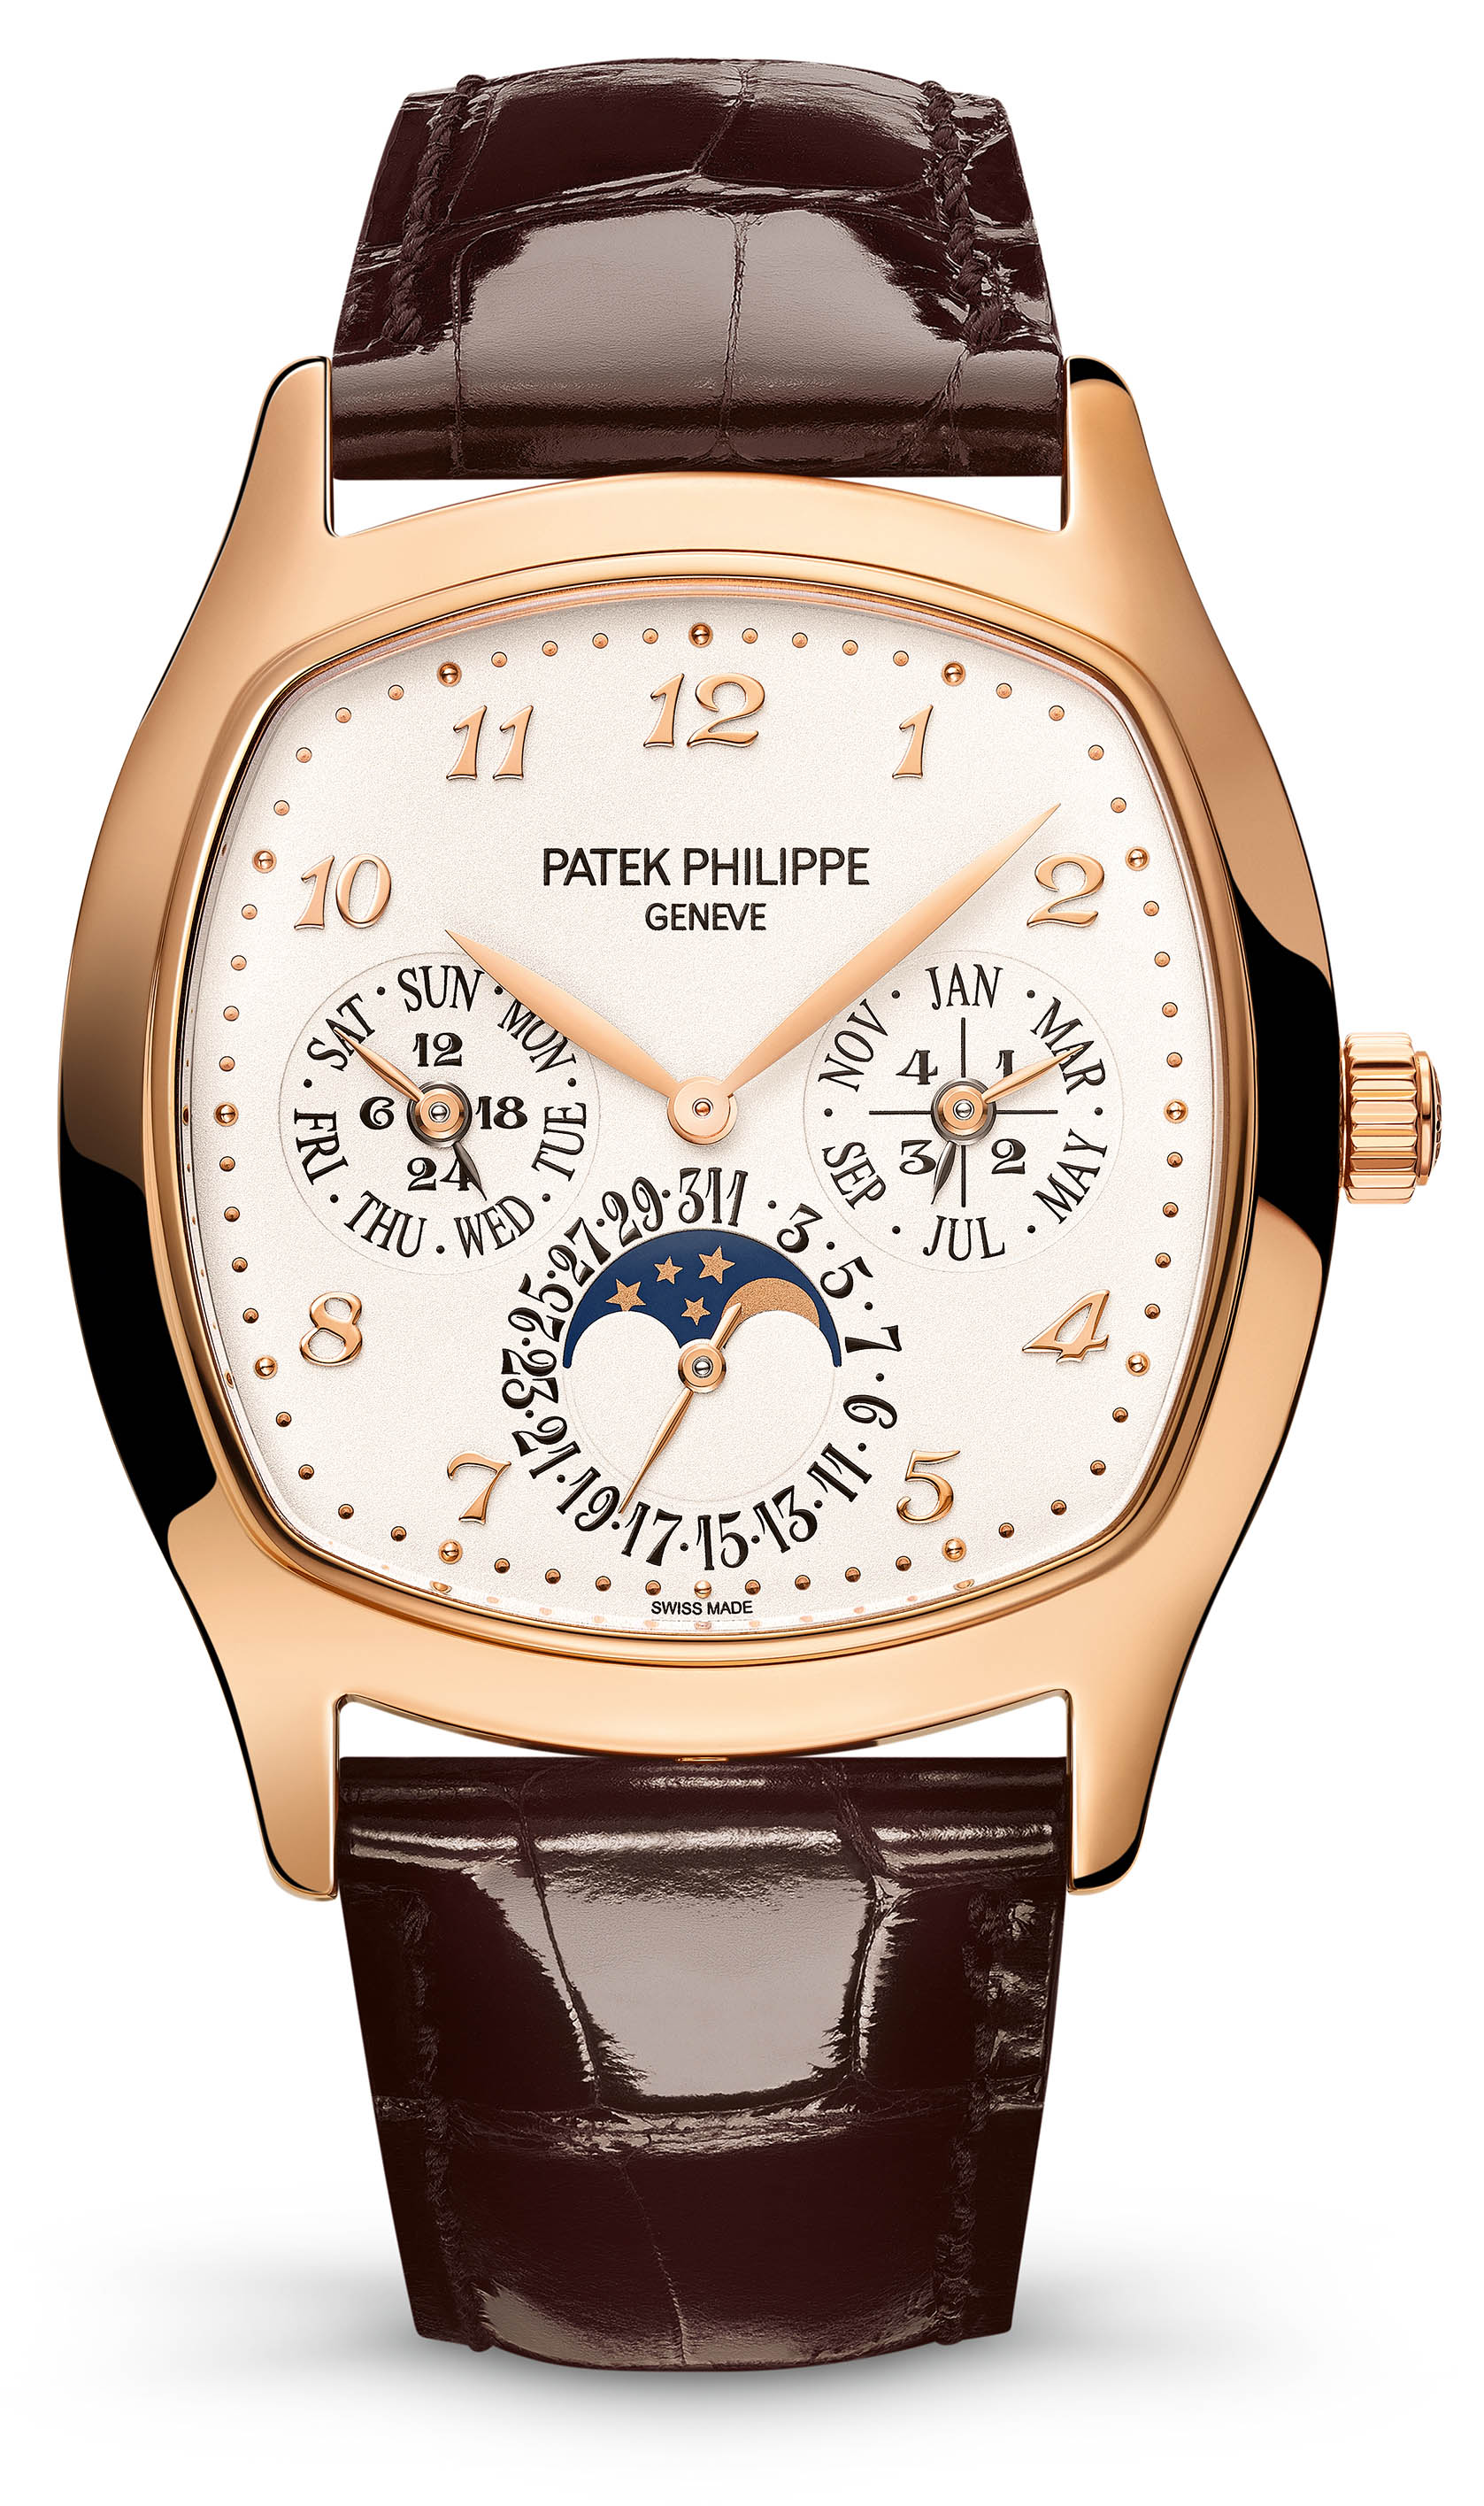 Grand Complication - 5940R-001